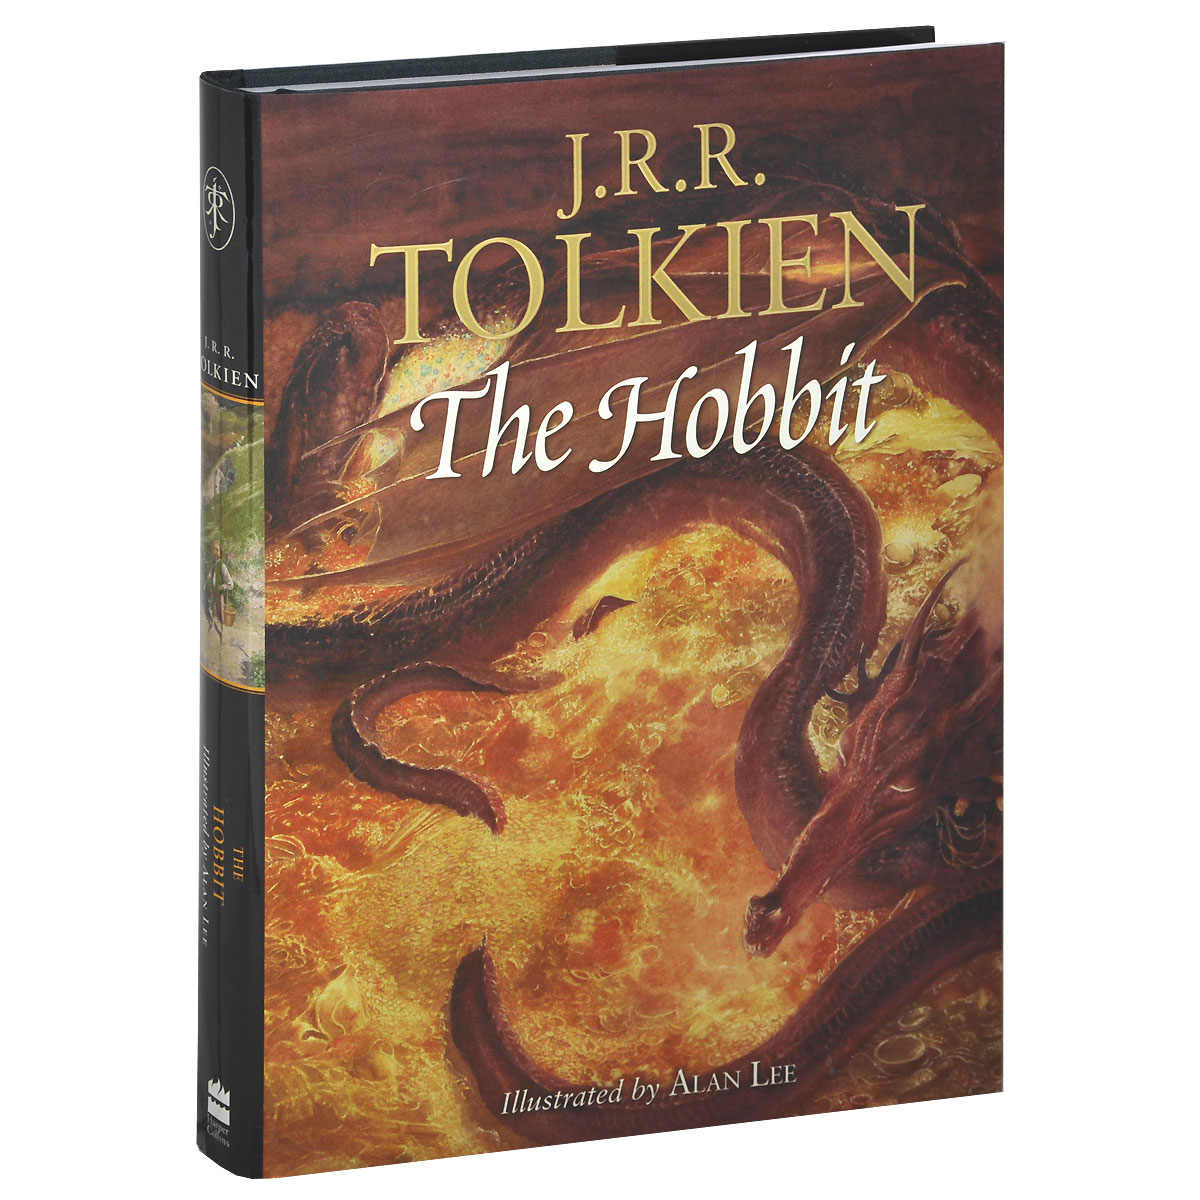 The Hobbit the illustrated story of art